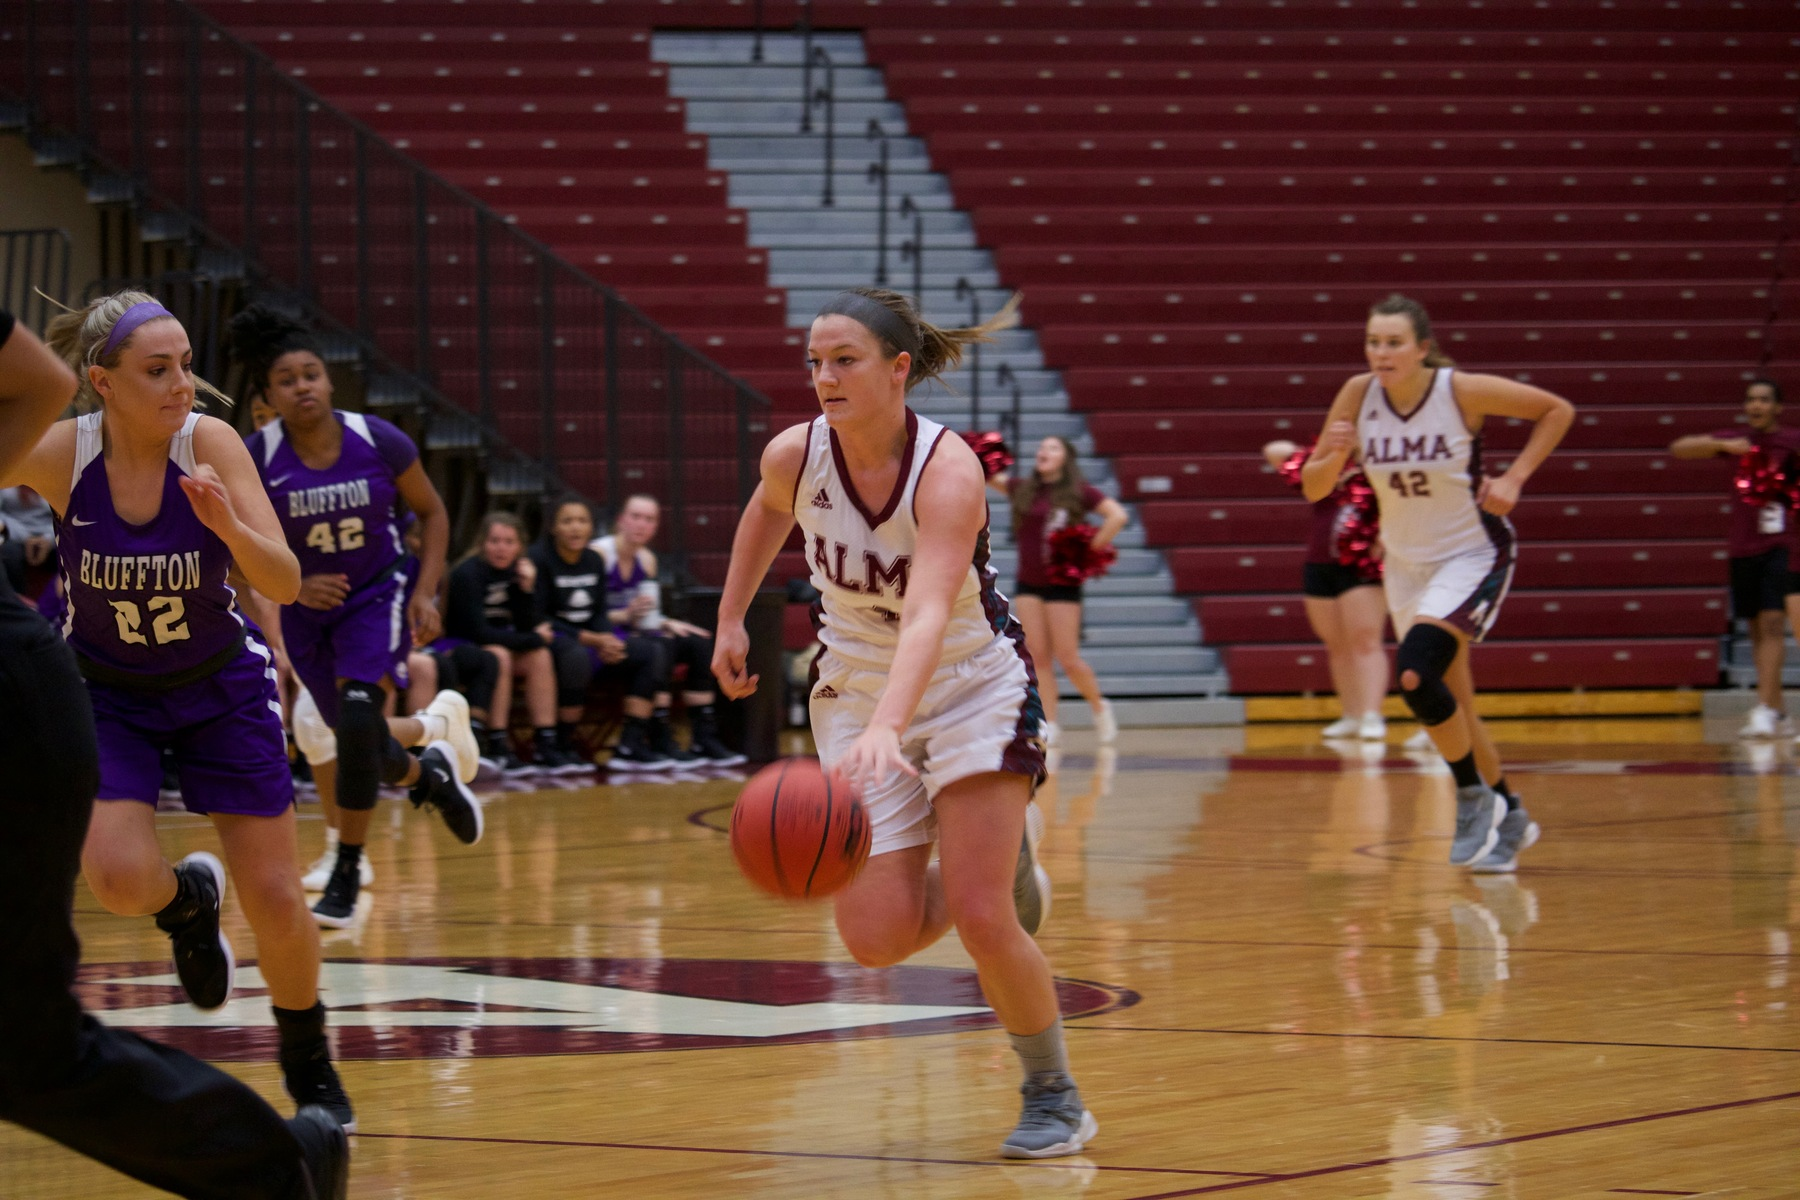 Women's Basketball Takes Down Earlham